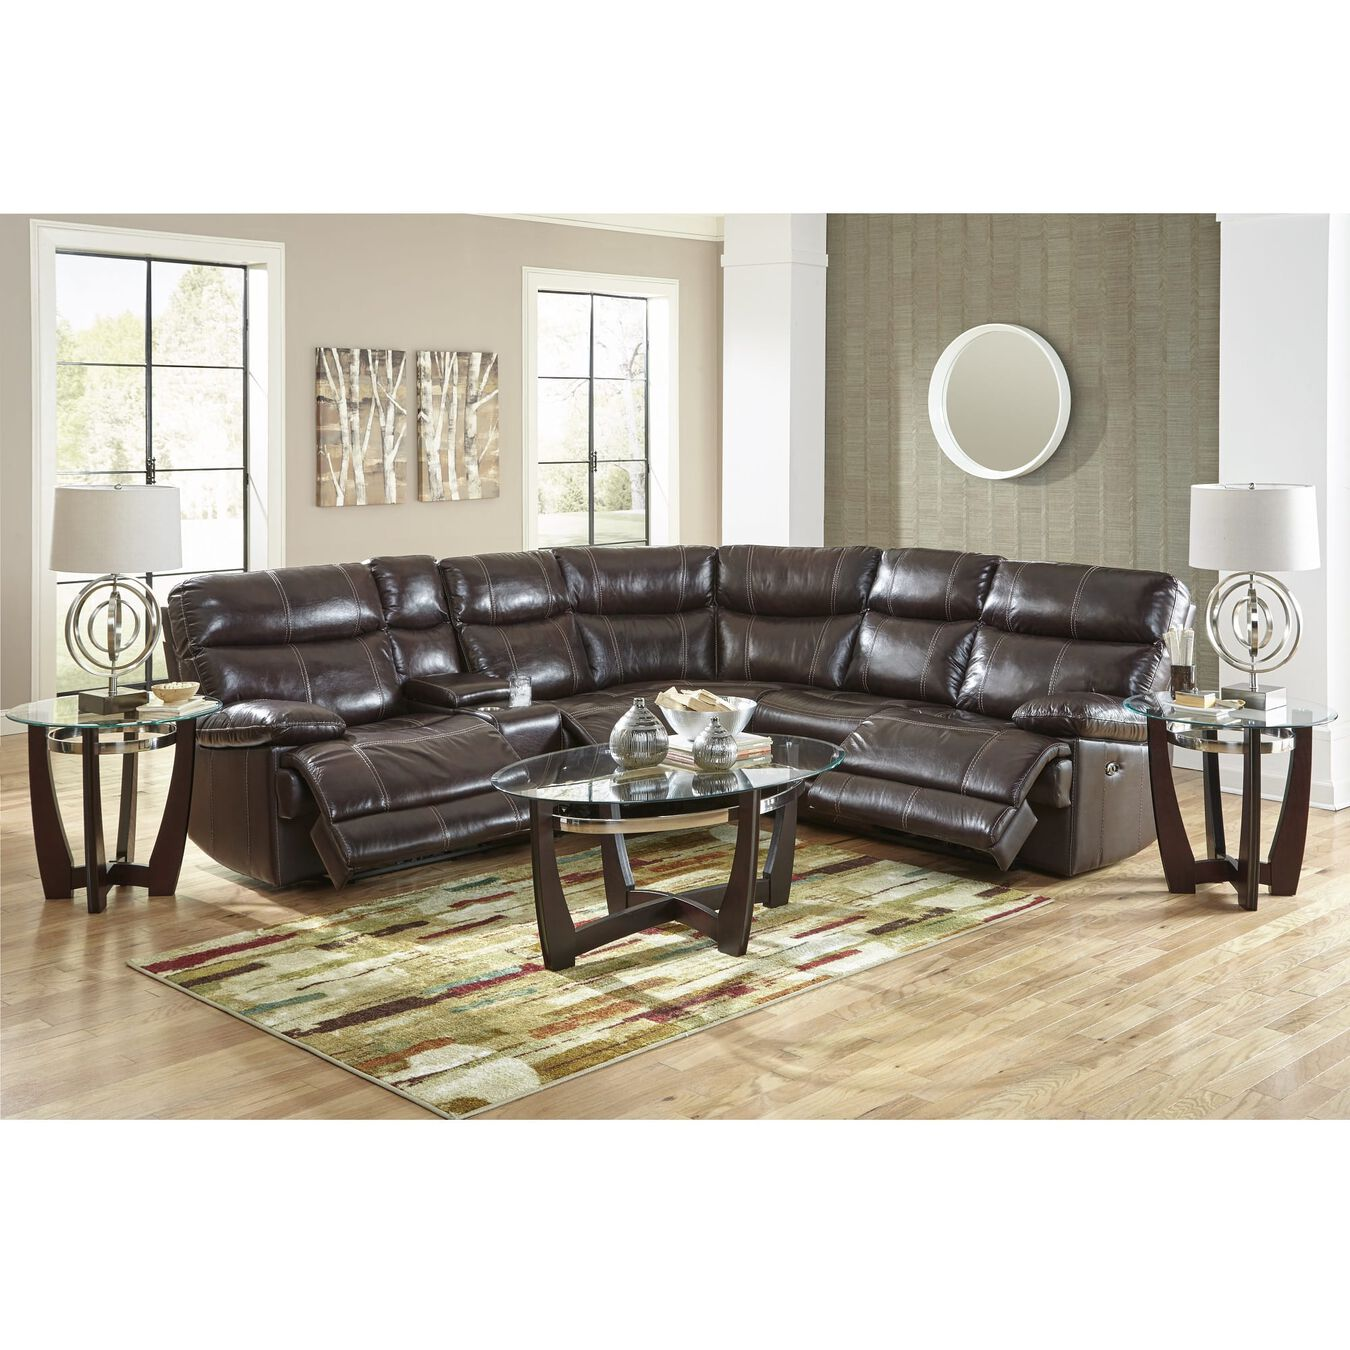 Happy leather sectional sets 3 piece navarro power reclining living room collection